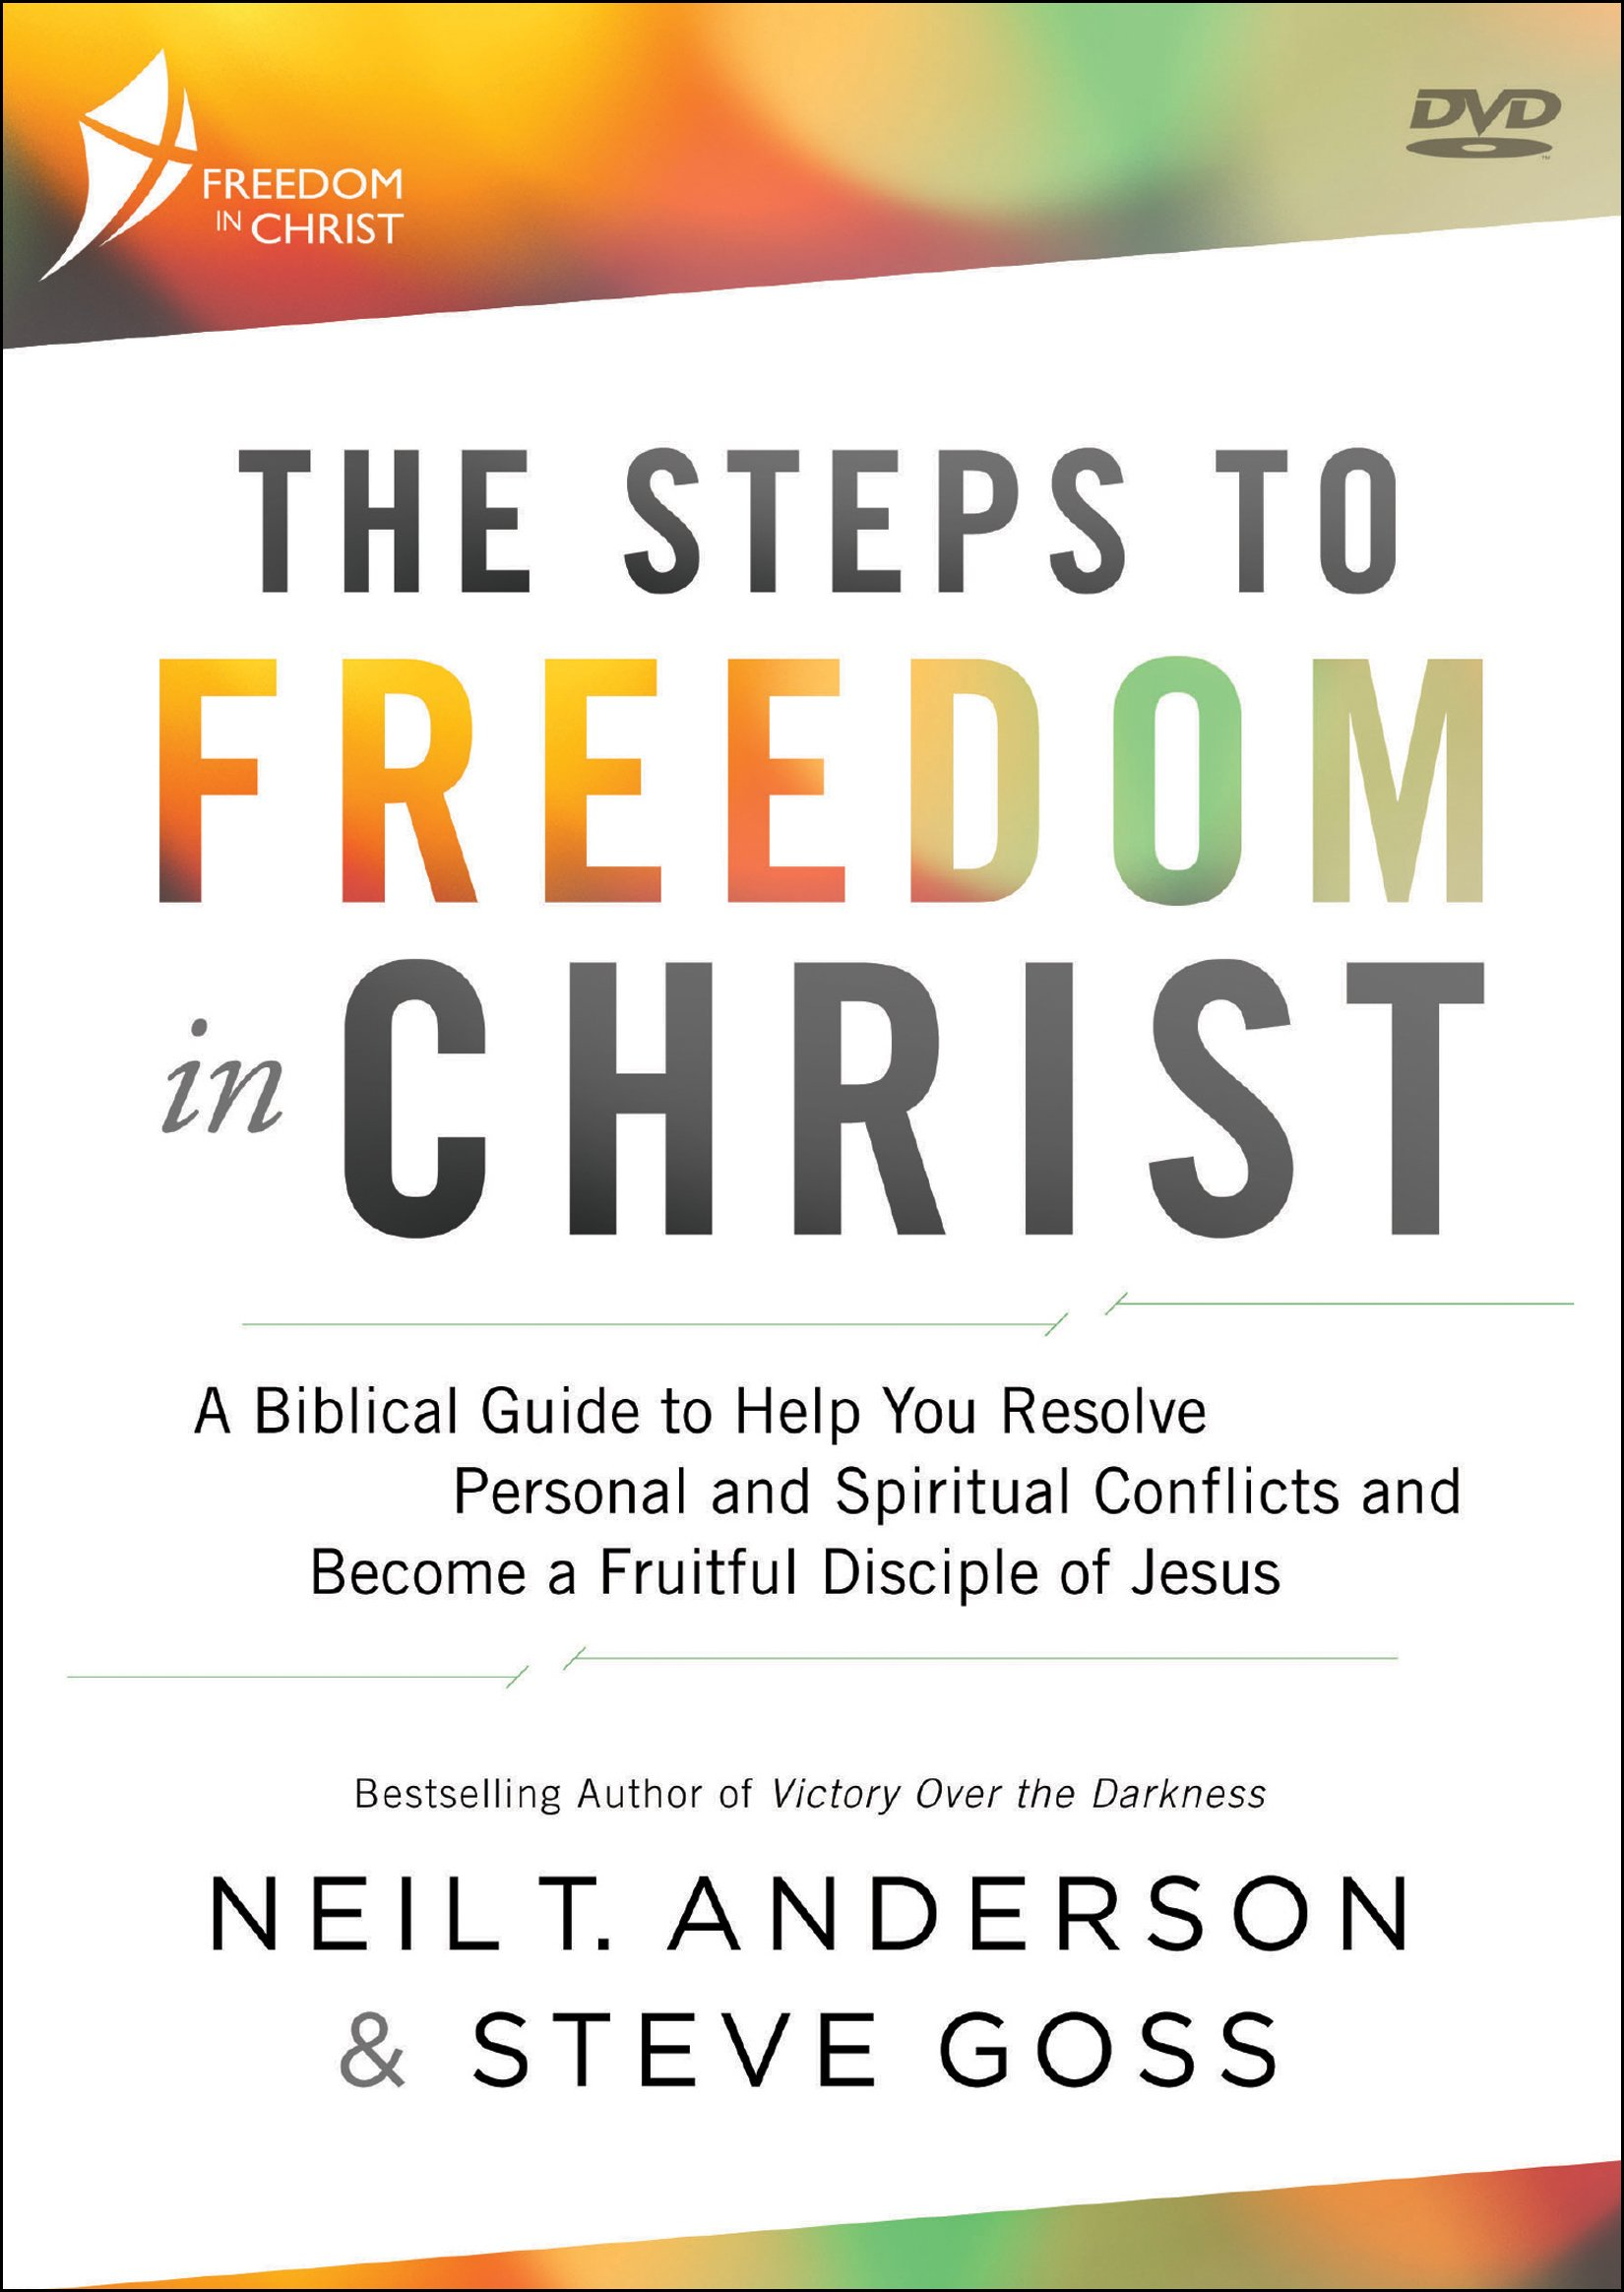 Freedom in Christ: A 10-Week Life-Changing Discipleship Course: Neil T.  Anderson, Steve Goss: 9780764219511: Amazon.com: Books